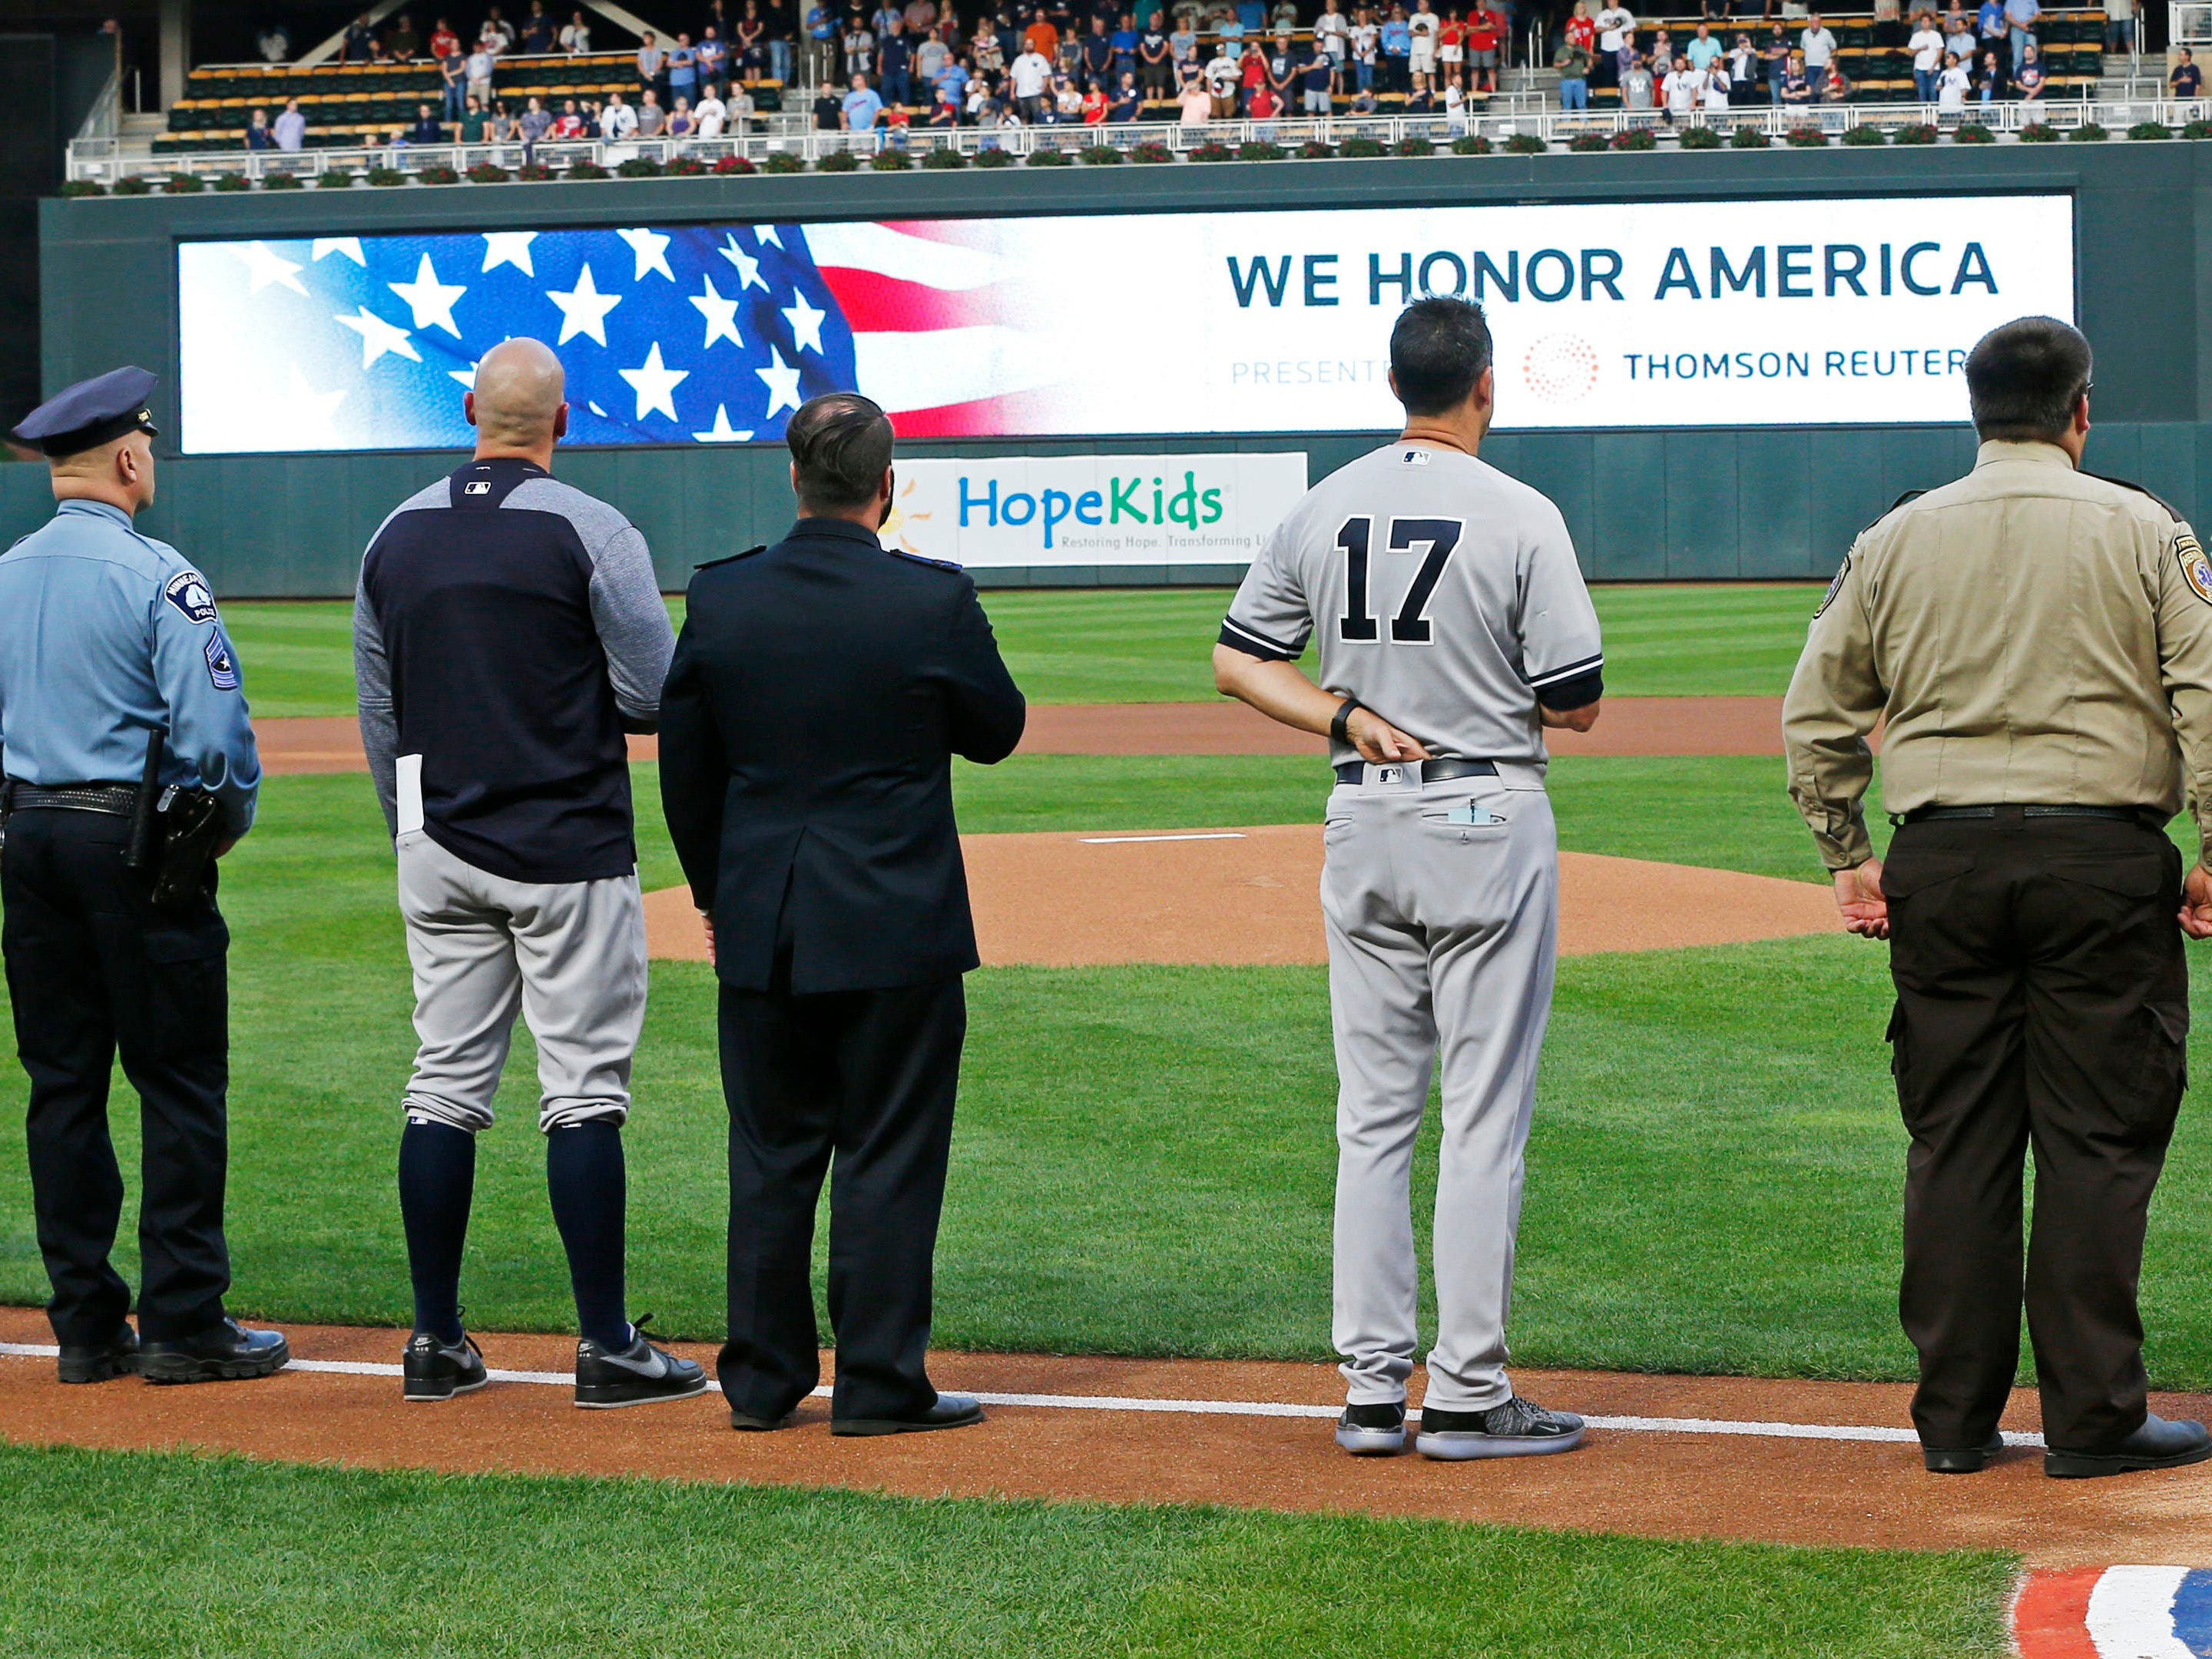 Players from both teams, including New York Yankees manager Aaron Boone (17), joined with police and first responders during the national anthem following a tribute to 9/11 victims and survivors prior to a baseball game between the Minnesota Twins and the Yankees, Tuesday, Sept. 11, 2018, in Minneapolis. Tom Barnett Jr. was aboard Flight 93 which went down in Pennsylvania.